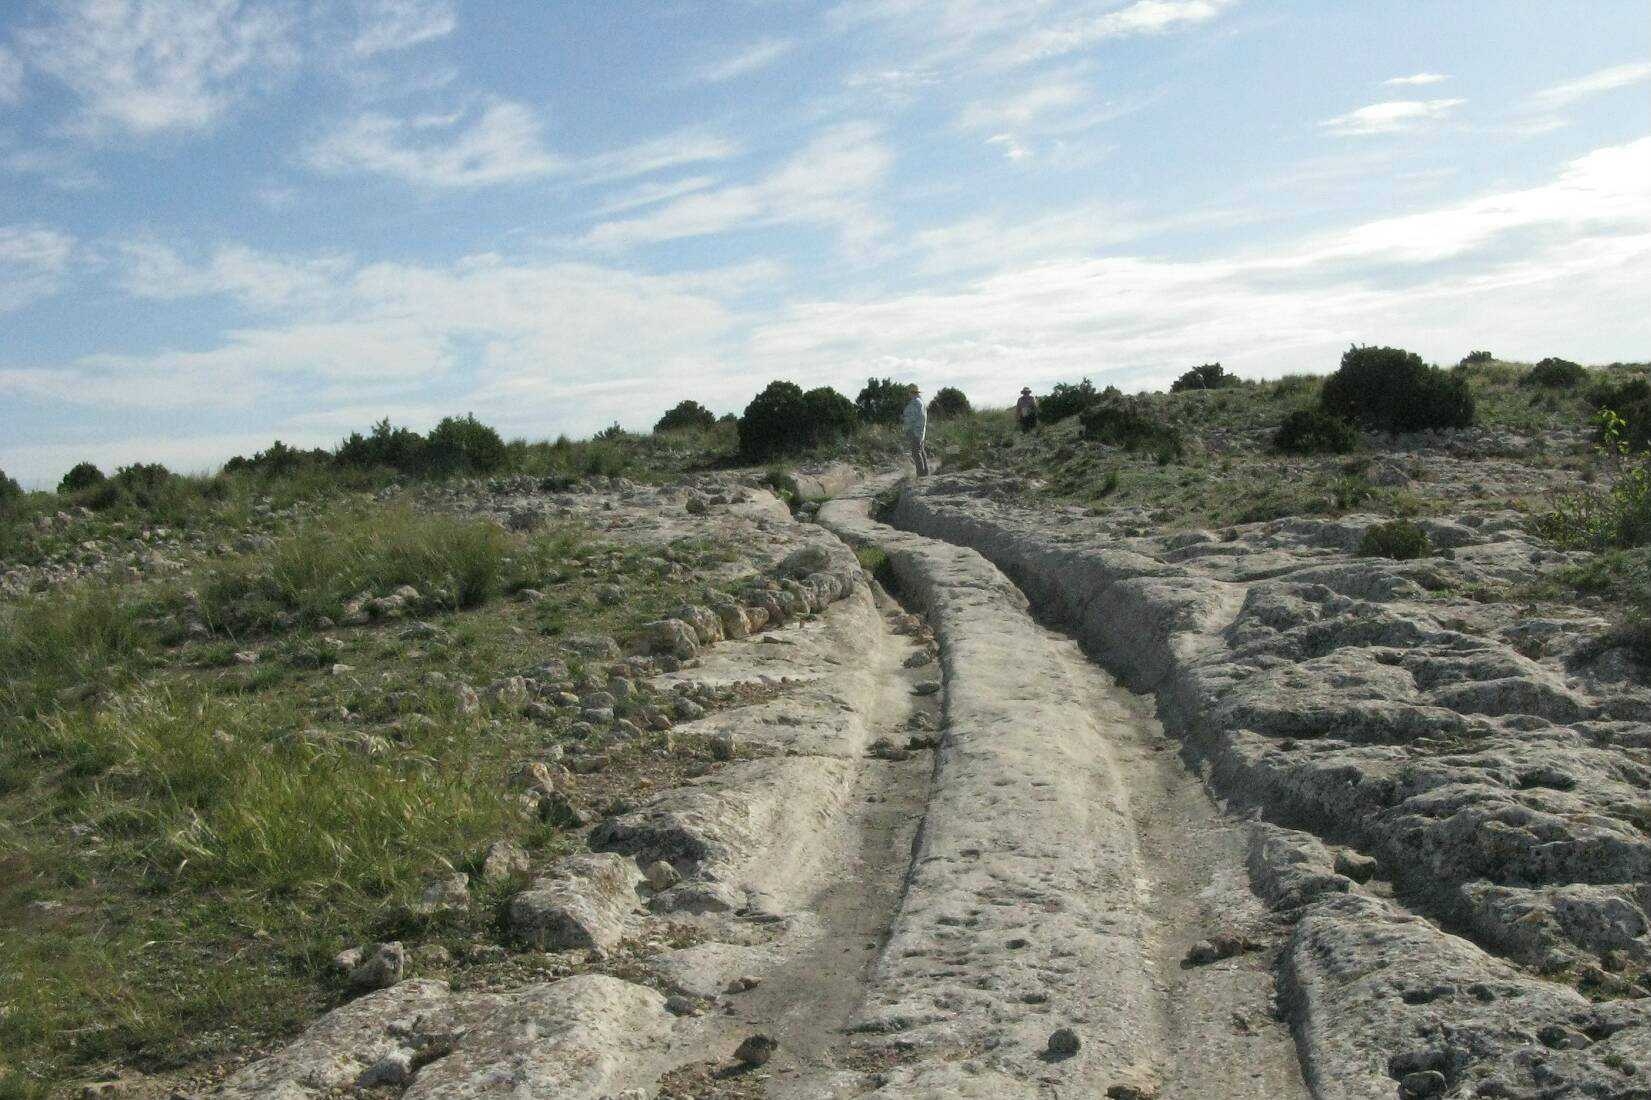 12 Million-Year-Old Vehicle Tracks Found in Stone, Claims Geologist